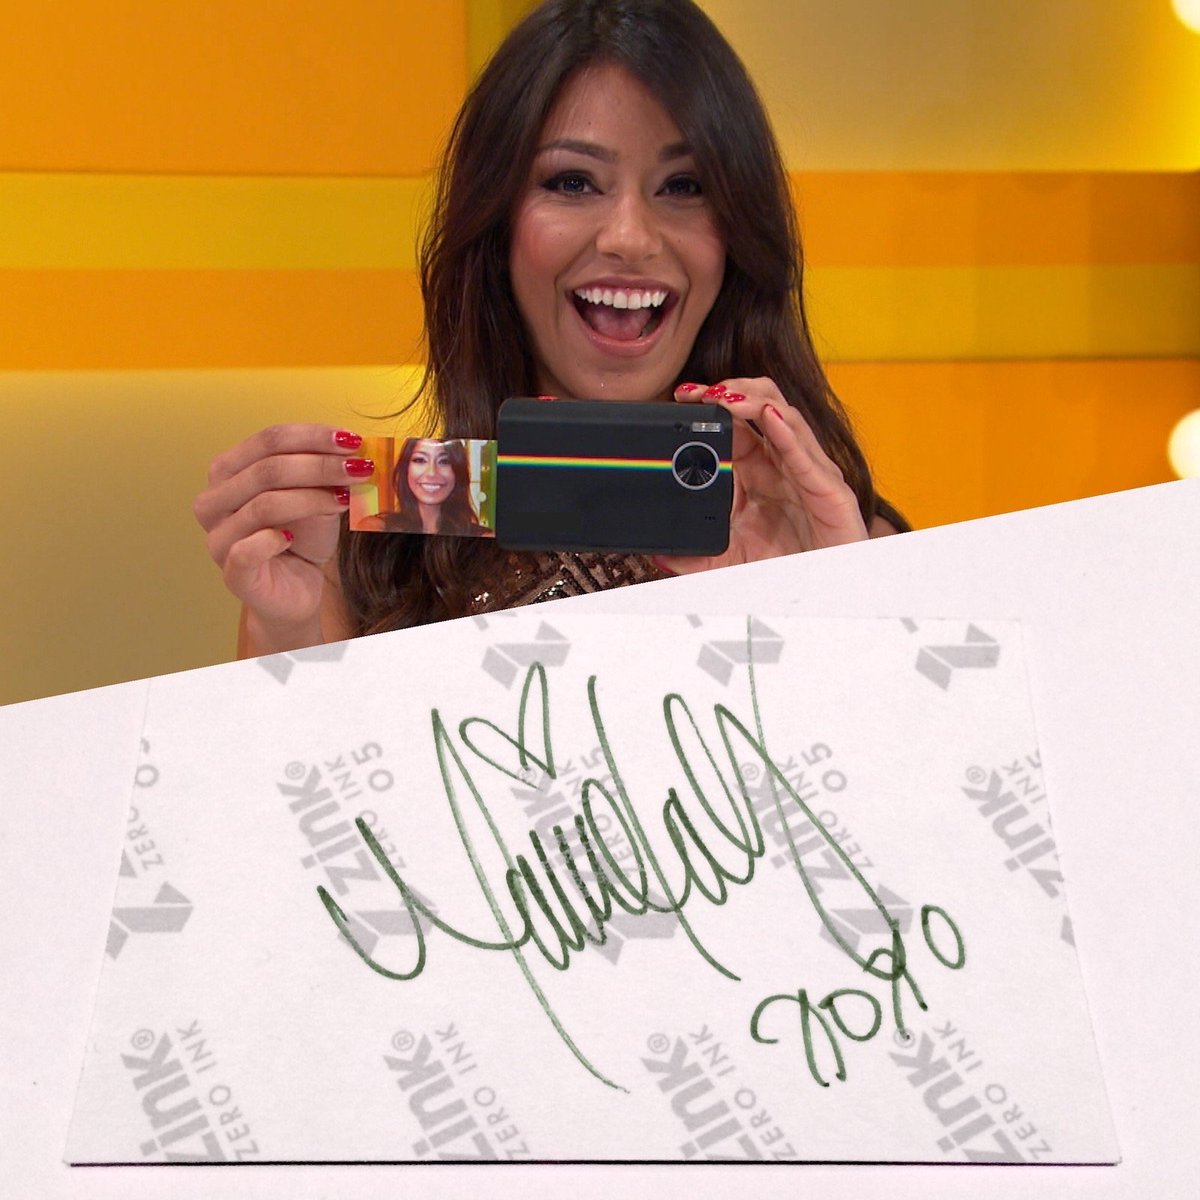 Want this autographed @ManuelaArbelaez selfie? We'll send it to 1 random person who RTs this tweet! #PriceIsRight https://t.co/GnuMGm8CH4